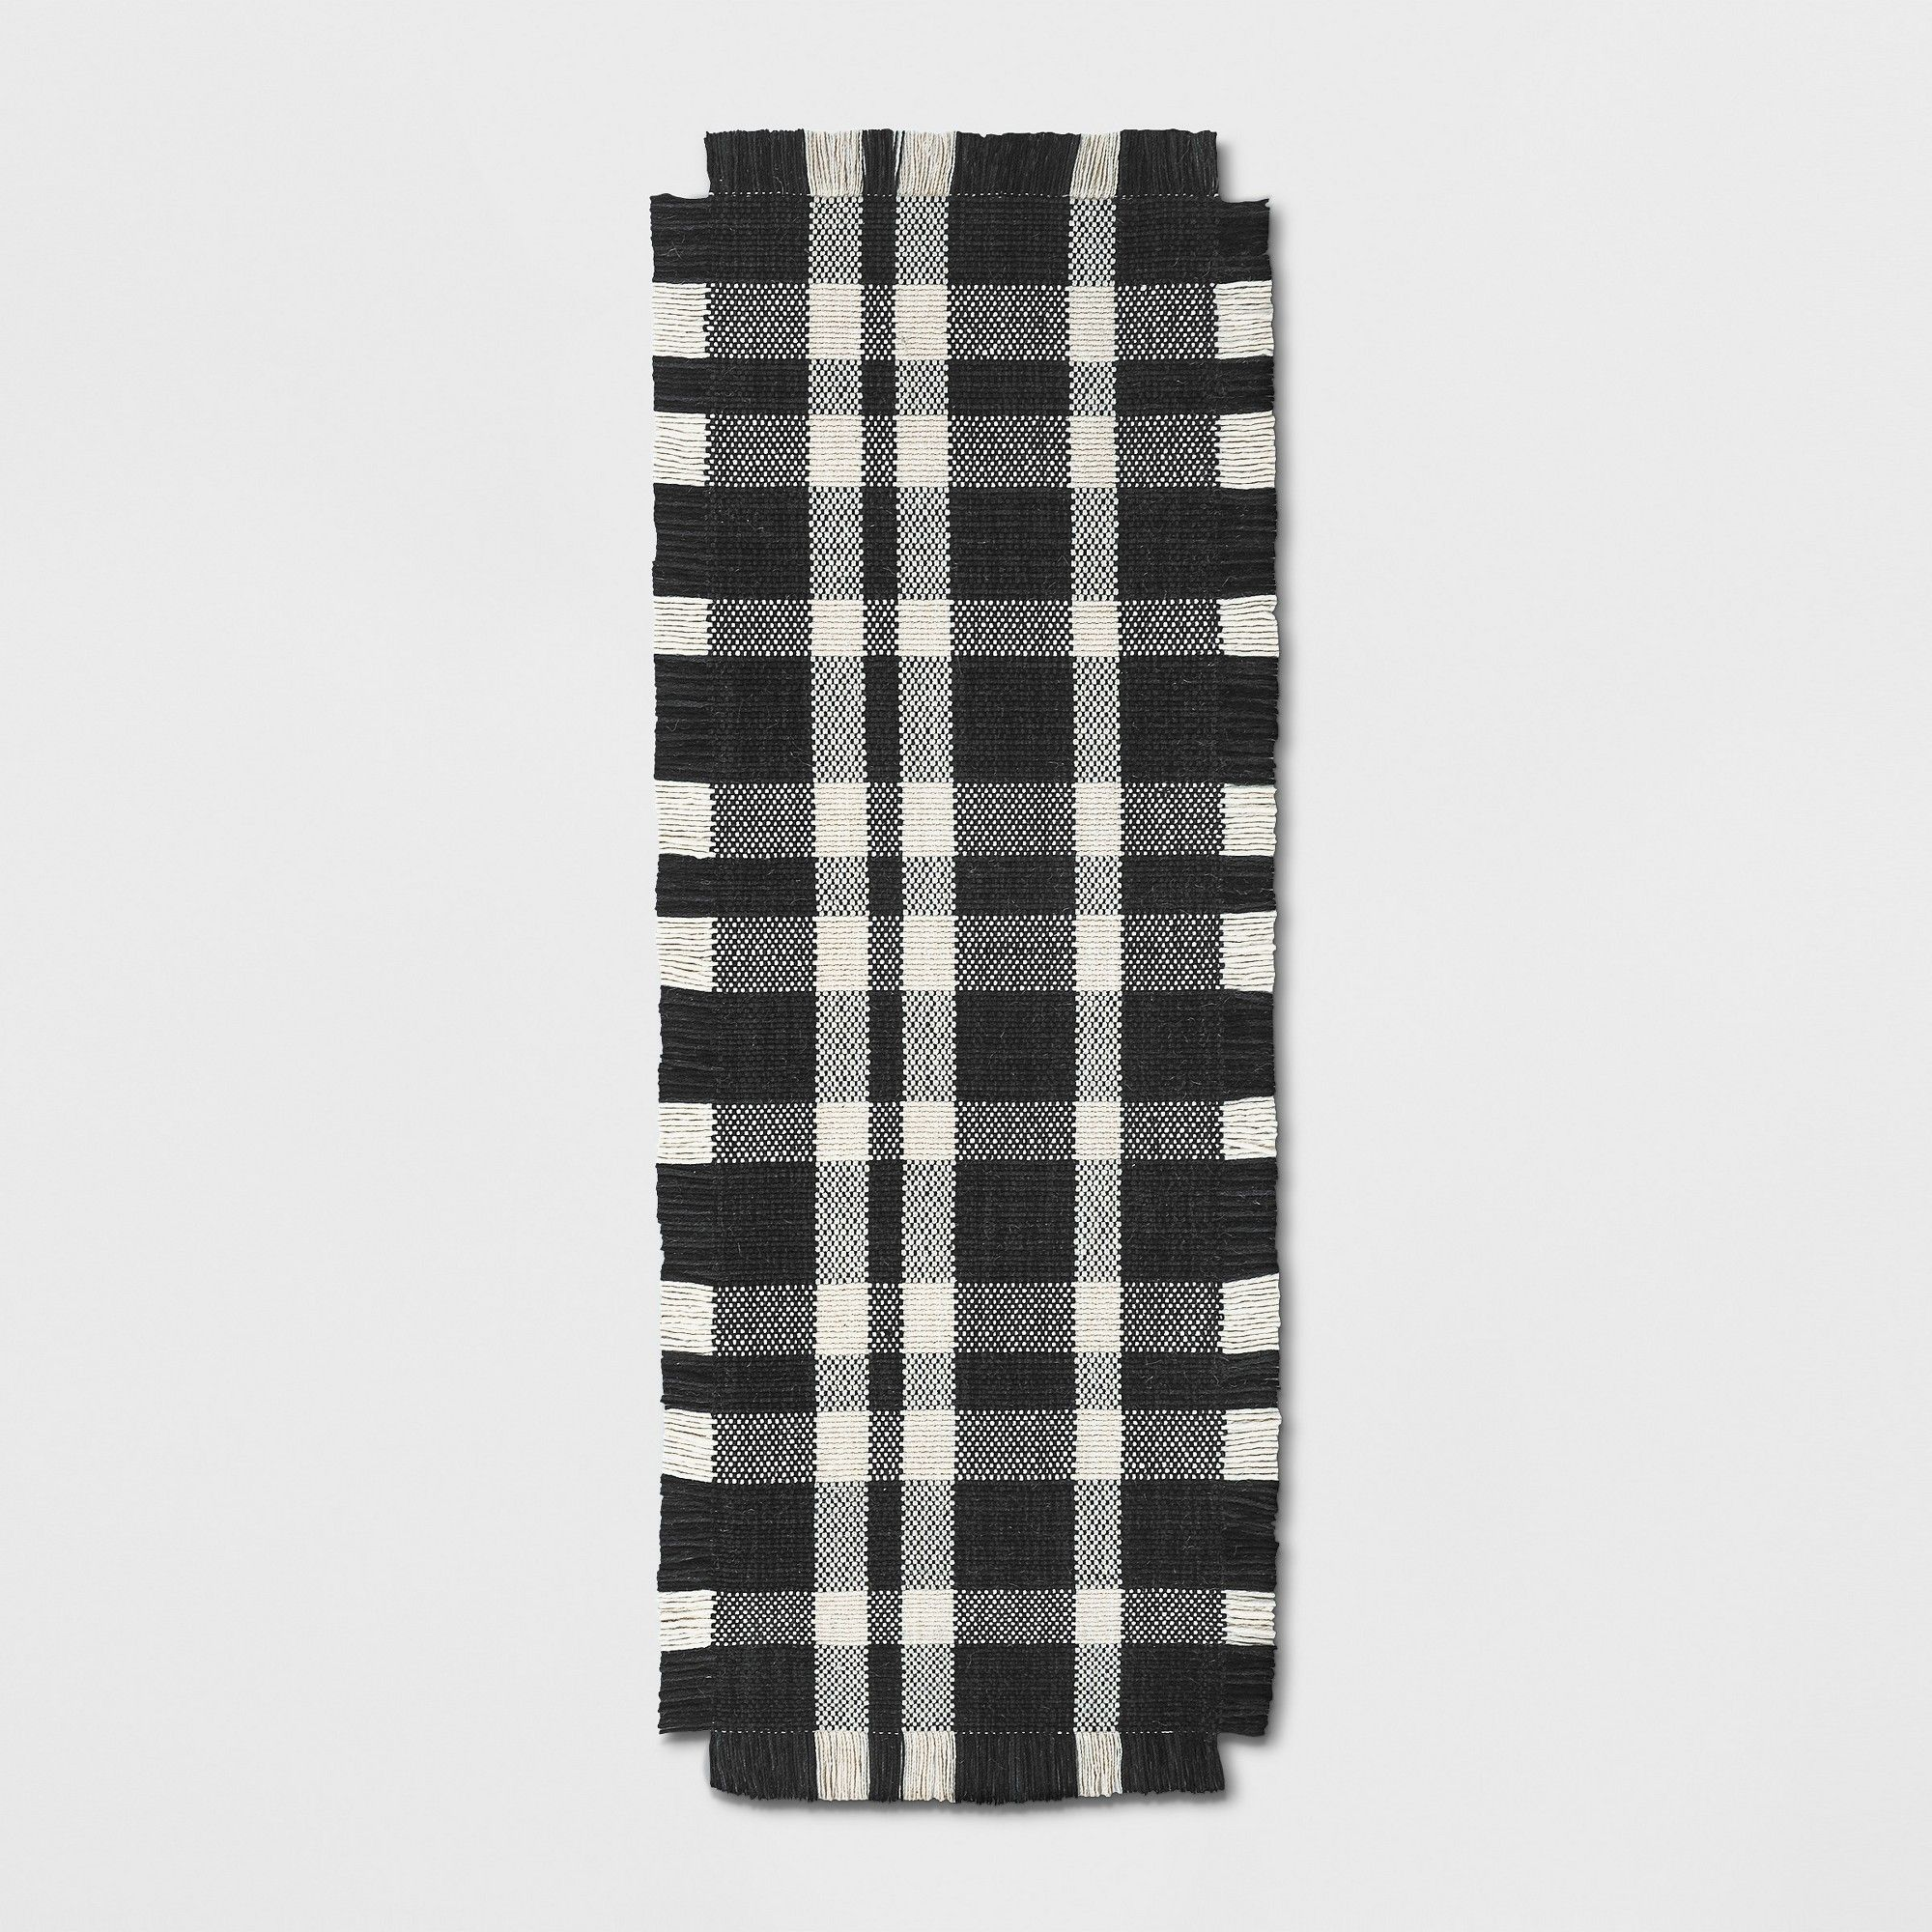 2 4 X7 Plaid Woven Accent Runner Rug Navy Threshold Plaid Rug Grey Area Rug Rugs